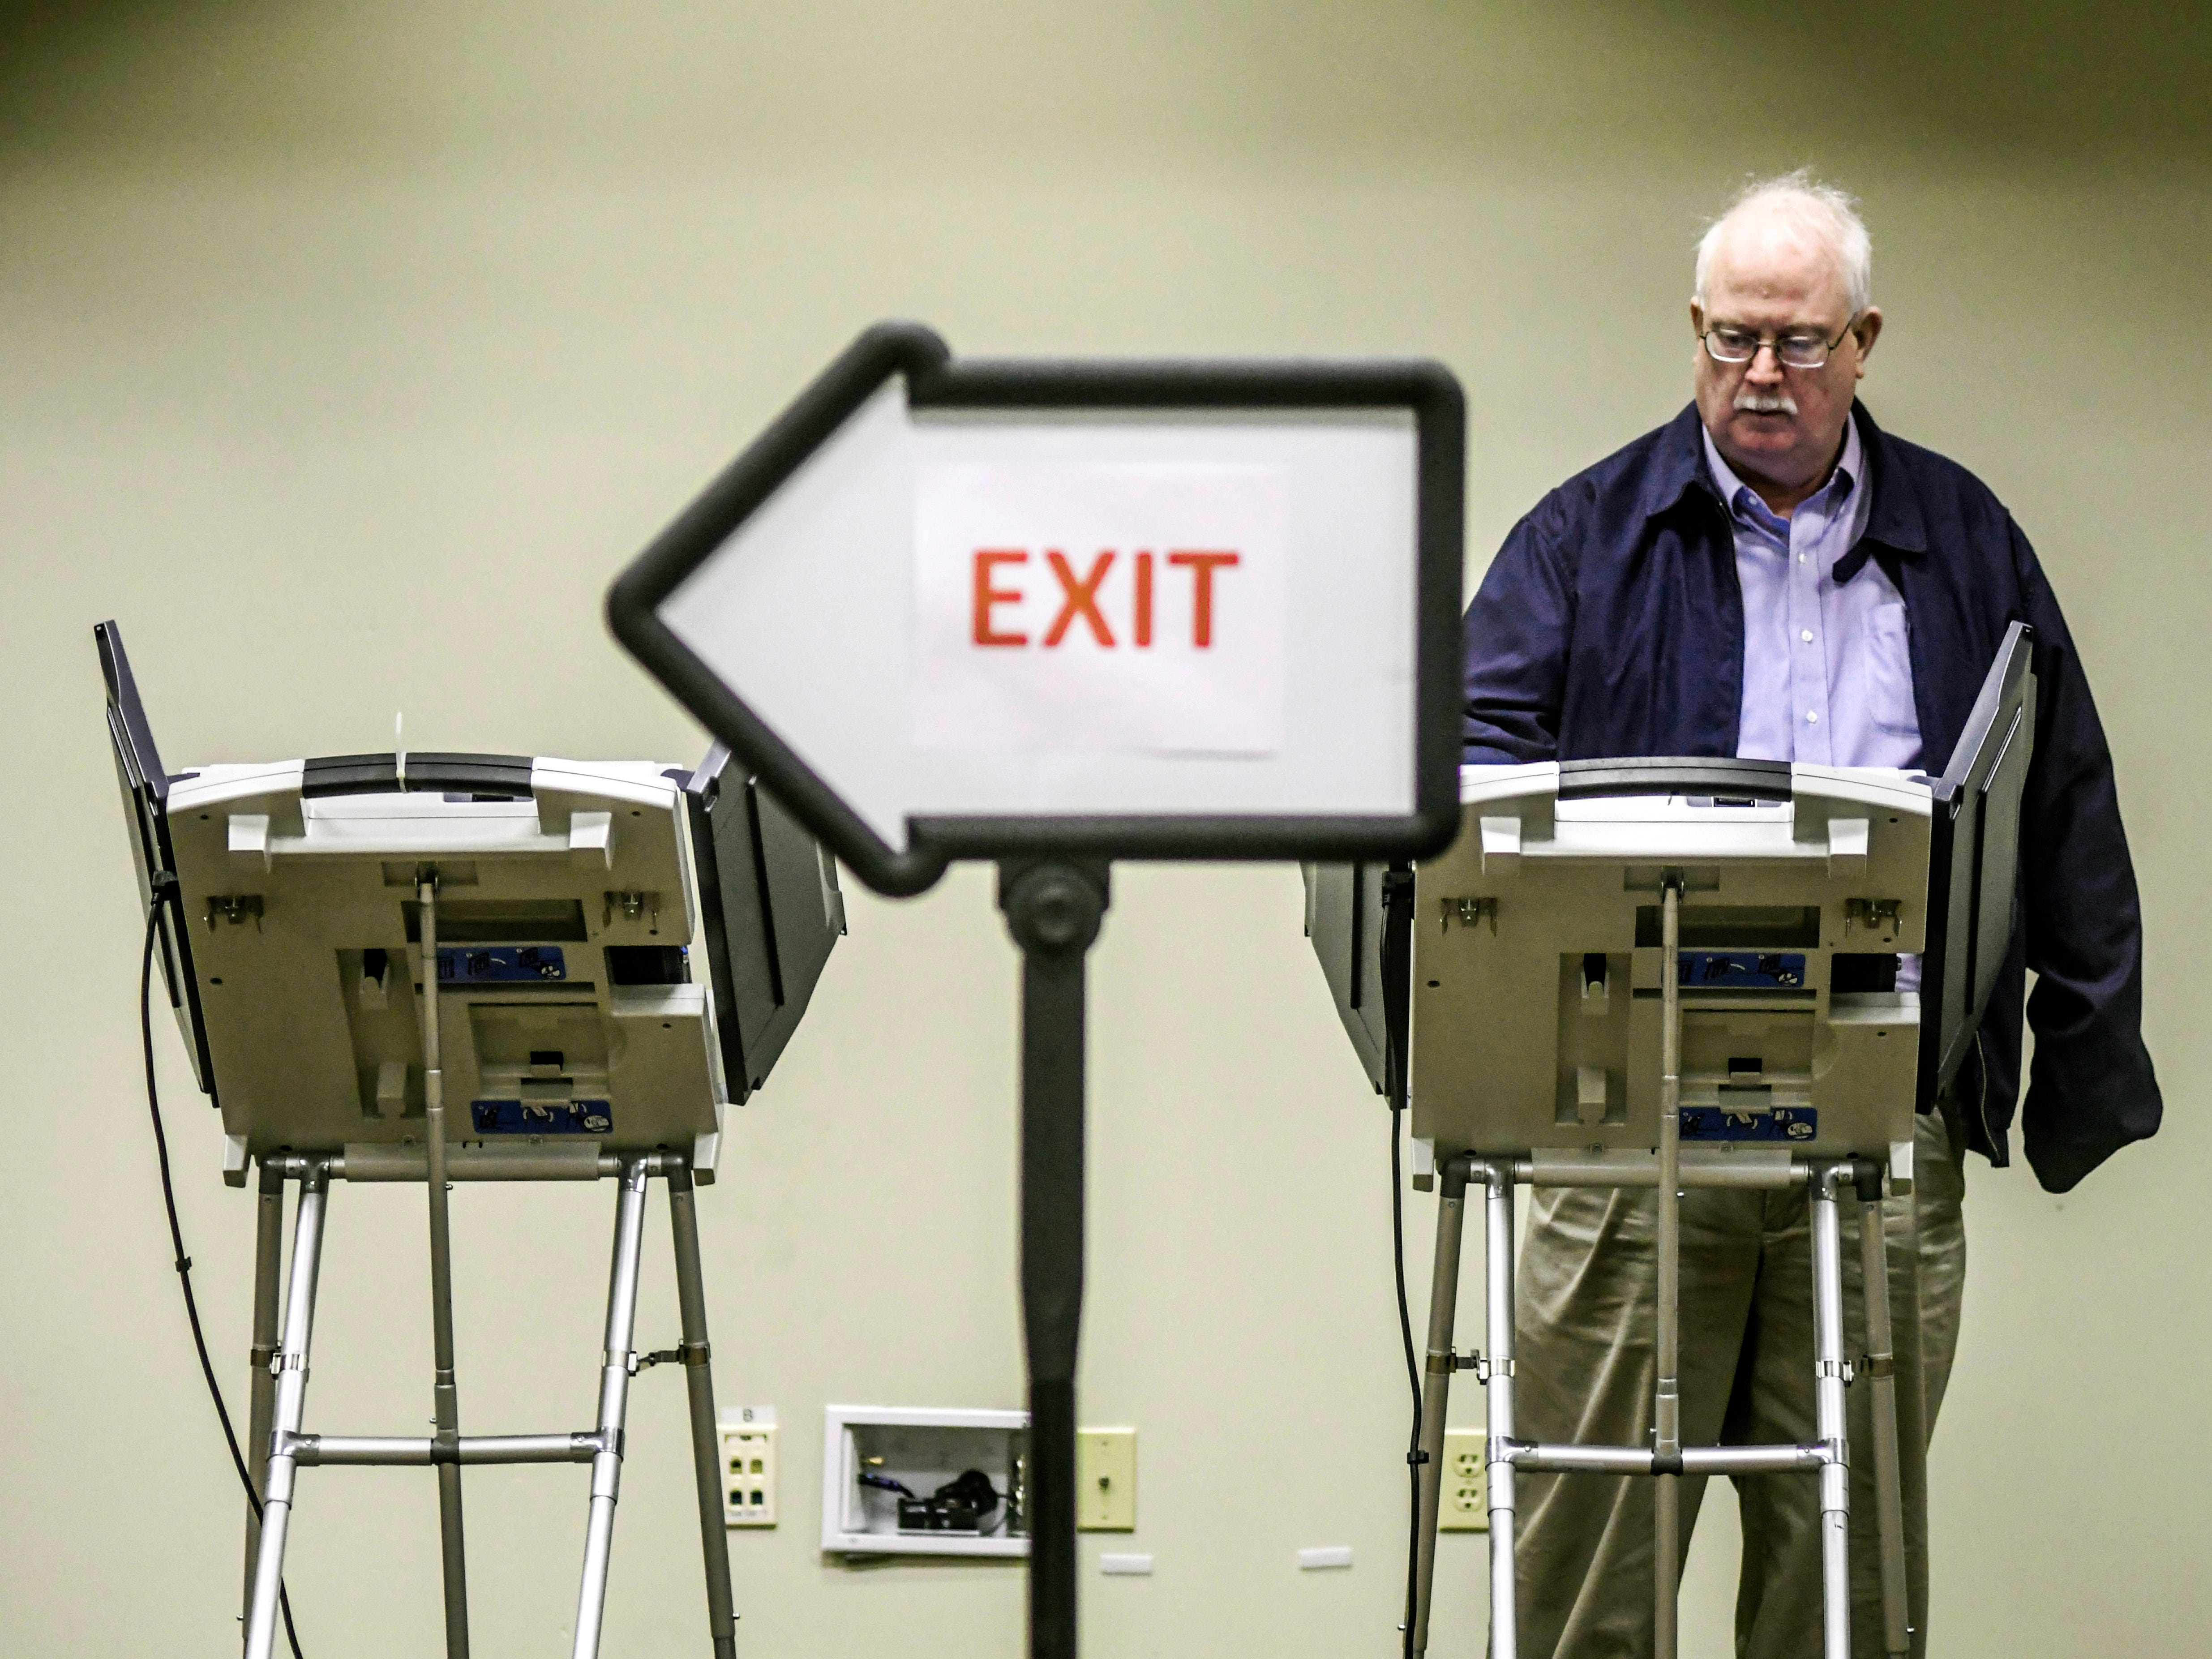 Don Whitten votes at the polls in a runoff election at the Oxford Conference Center in Oxford, Miss. on Tuesday, Nov. 27, 2018. Mississippi voters are deciding the last U.S. Senate race of the midterms, choosing between Espy and Republican Sen. Cindy Hyde-Smith.